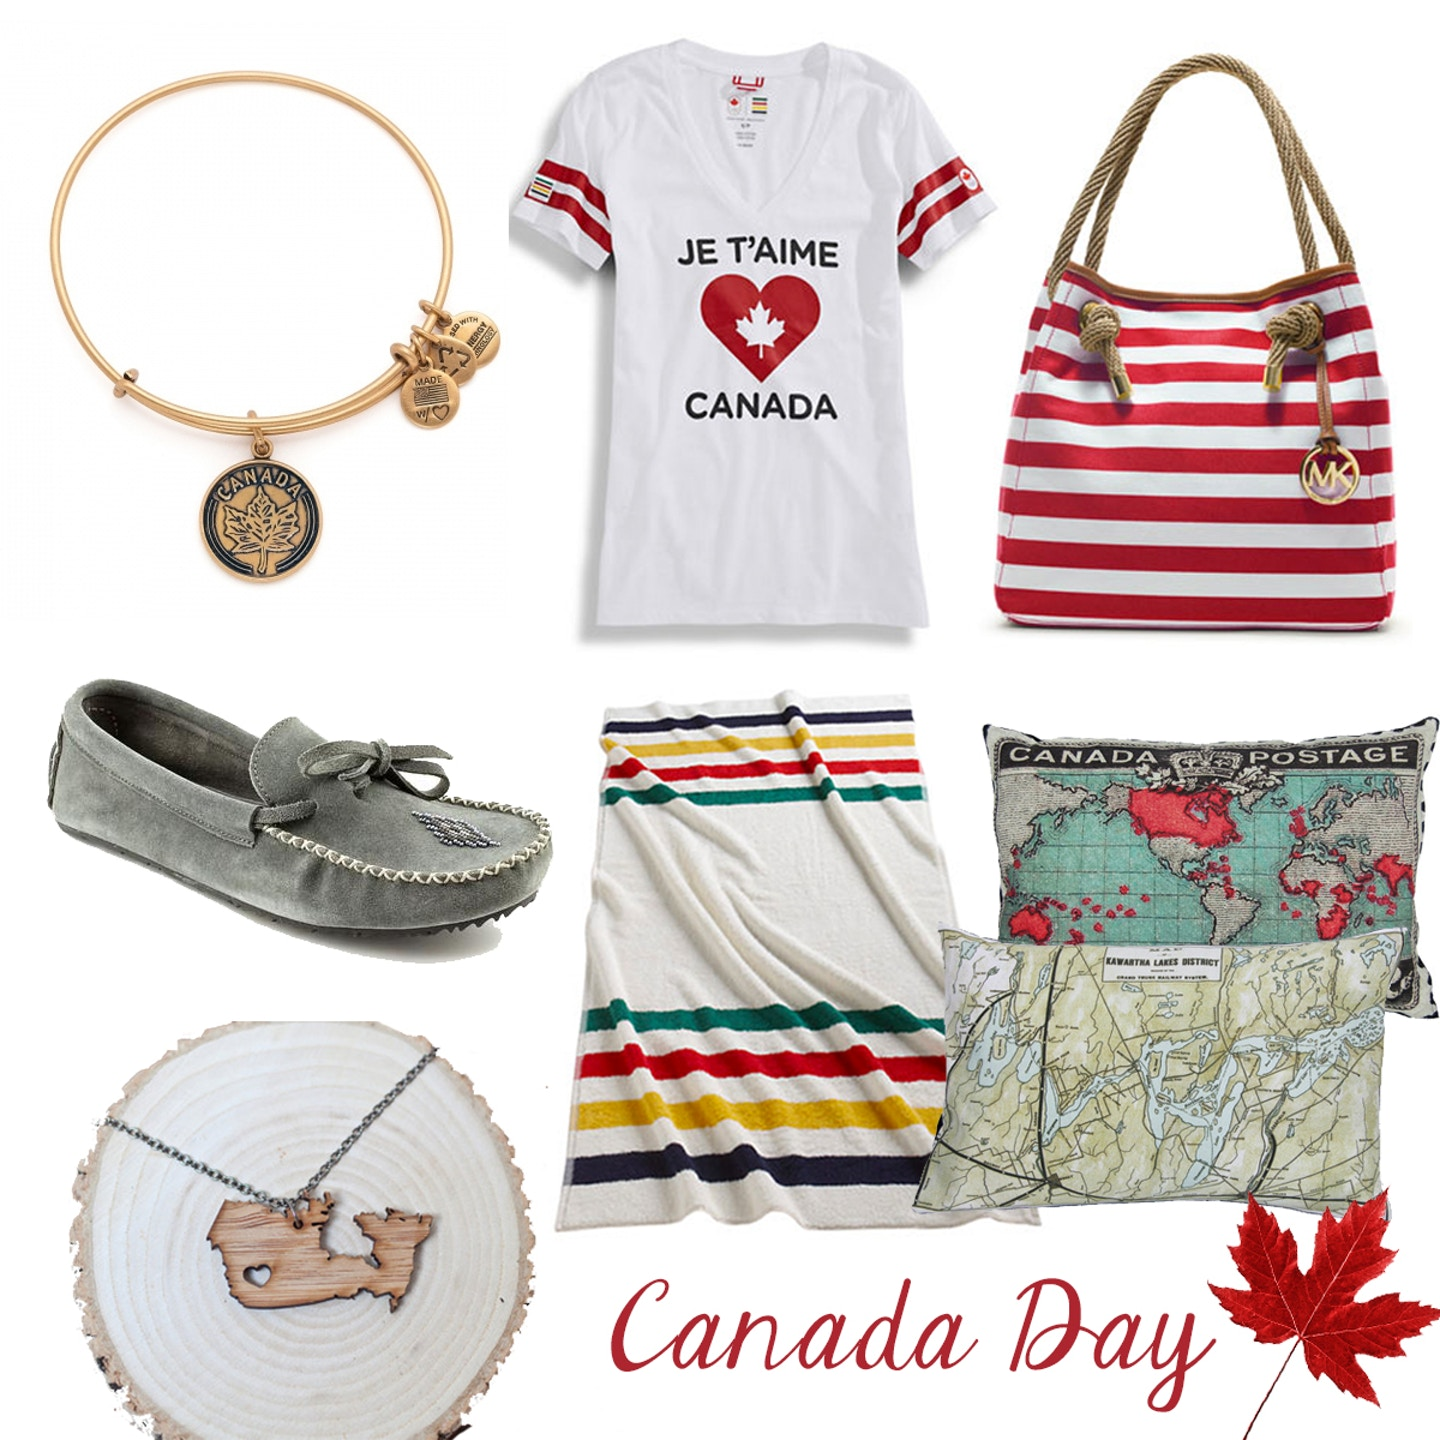 Celebrate Canada Day with Canadian-inspired fashion